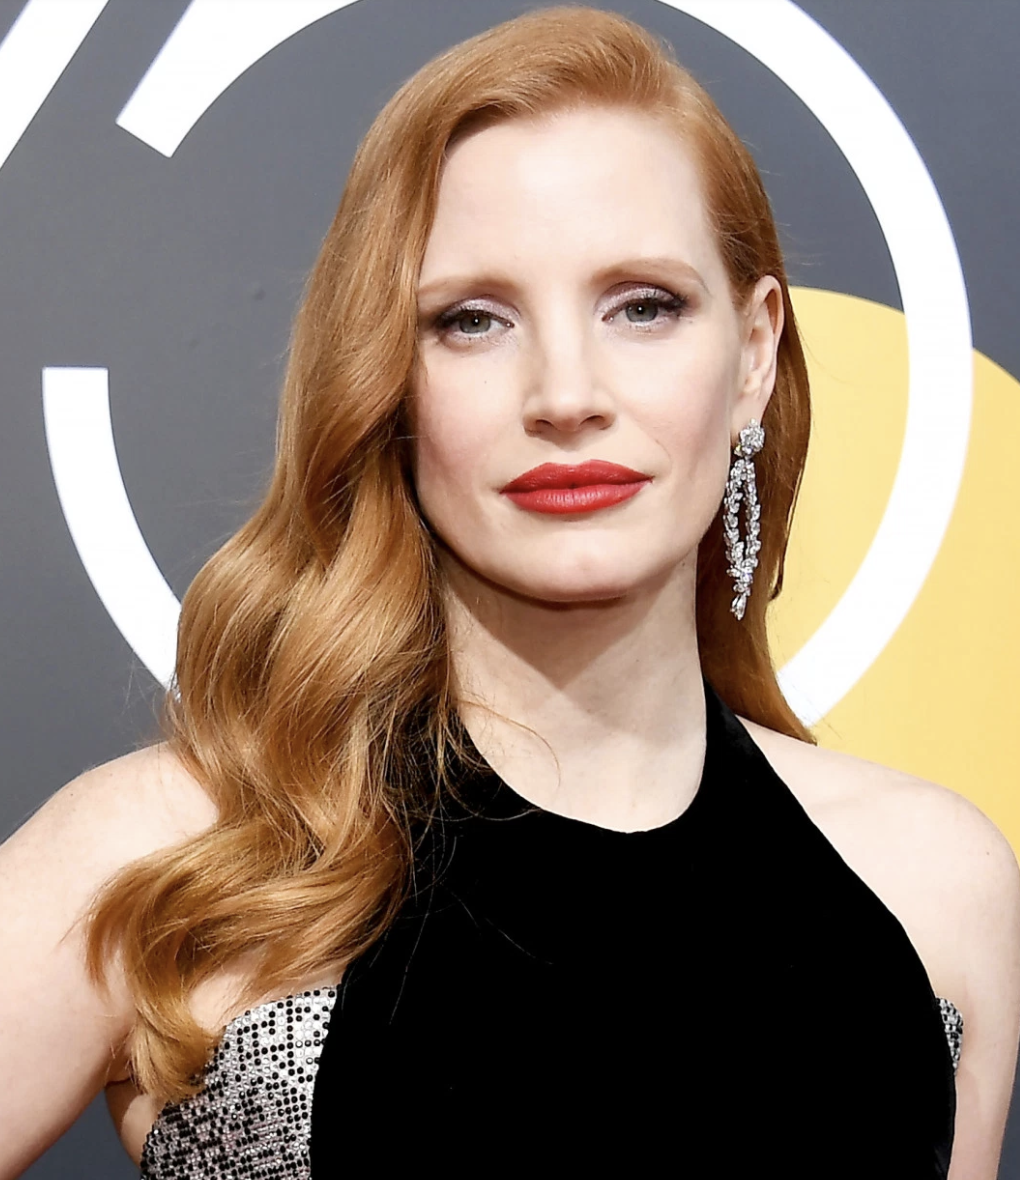 Jessica Chastain - I'm DEAD. Jessica is my wife/best friend/literal embodiment of my life goals. She is a vegan Queen with a 3 legged rescue dog and she slays every role she plays! Plus her Ariel hair is my dream shade. The best red lip of the NIGHT goes to Ms. Chastain. Thank you for choking me and taking my air away, it was an honor.